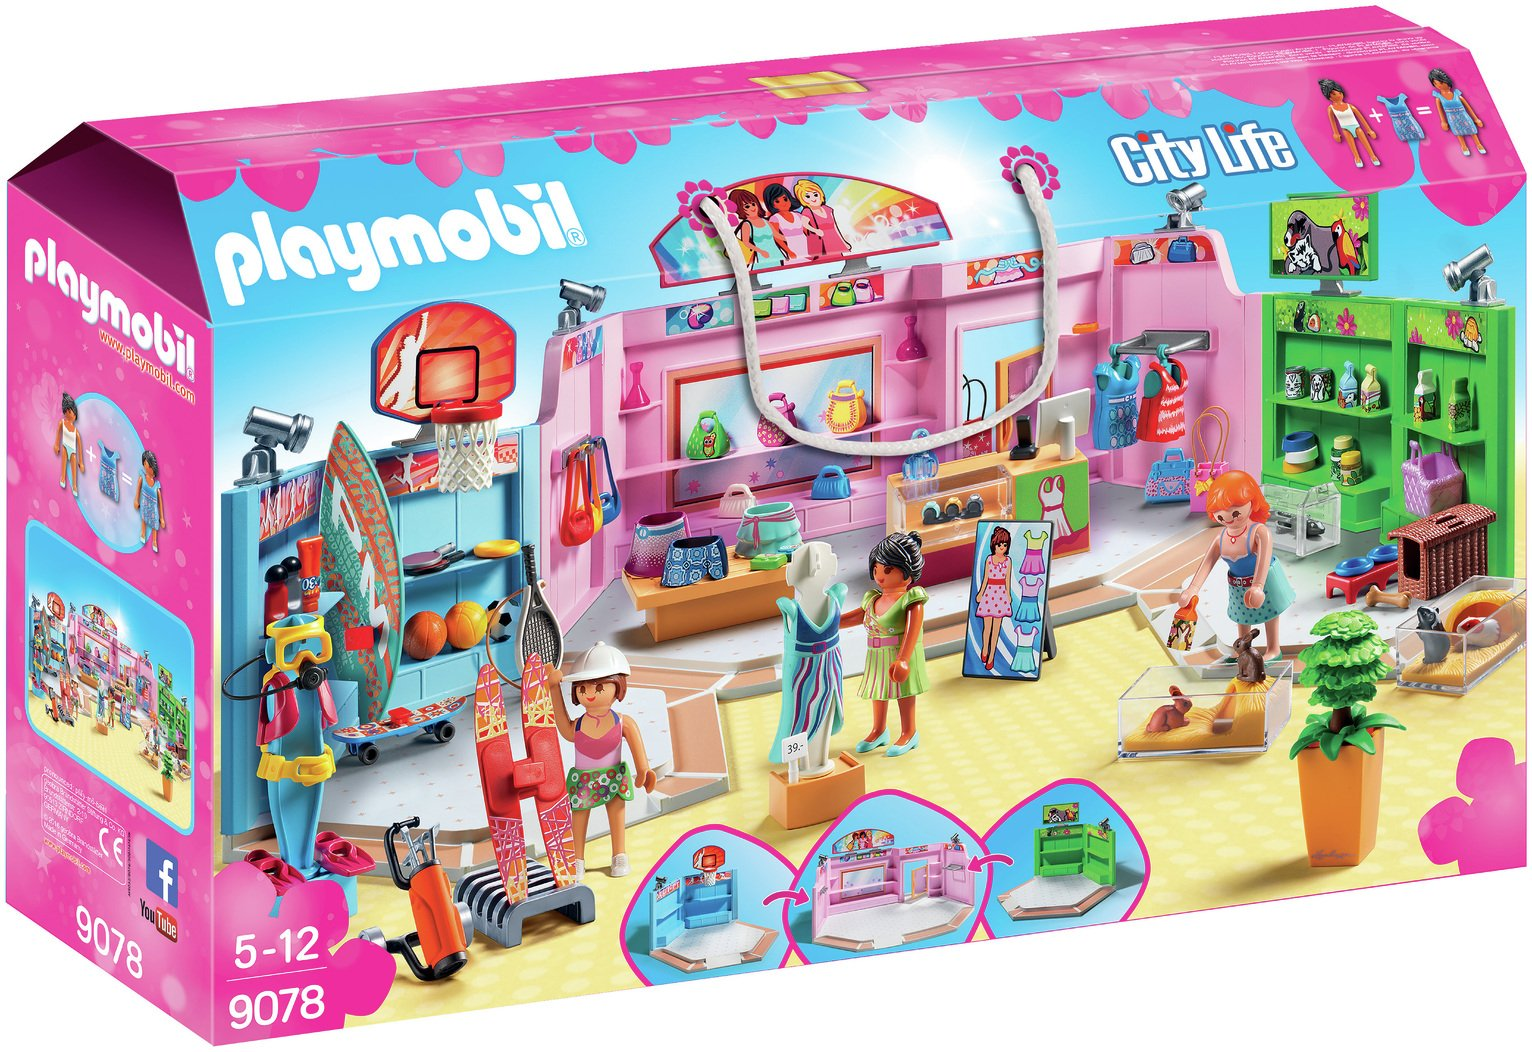 Playmobil 9078 City Life Shopping Plaza